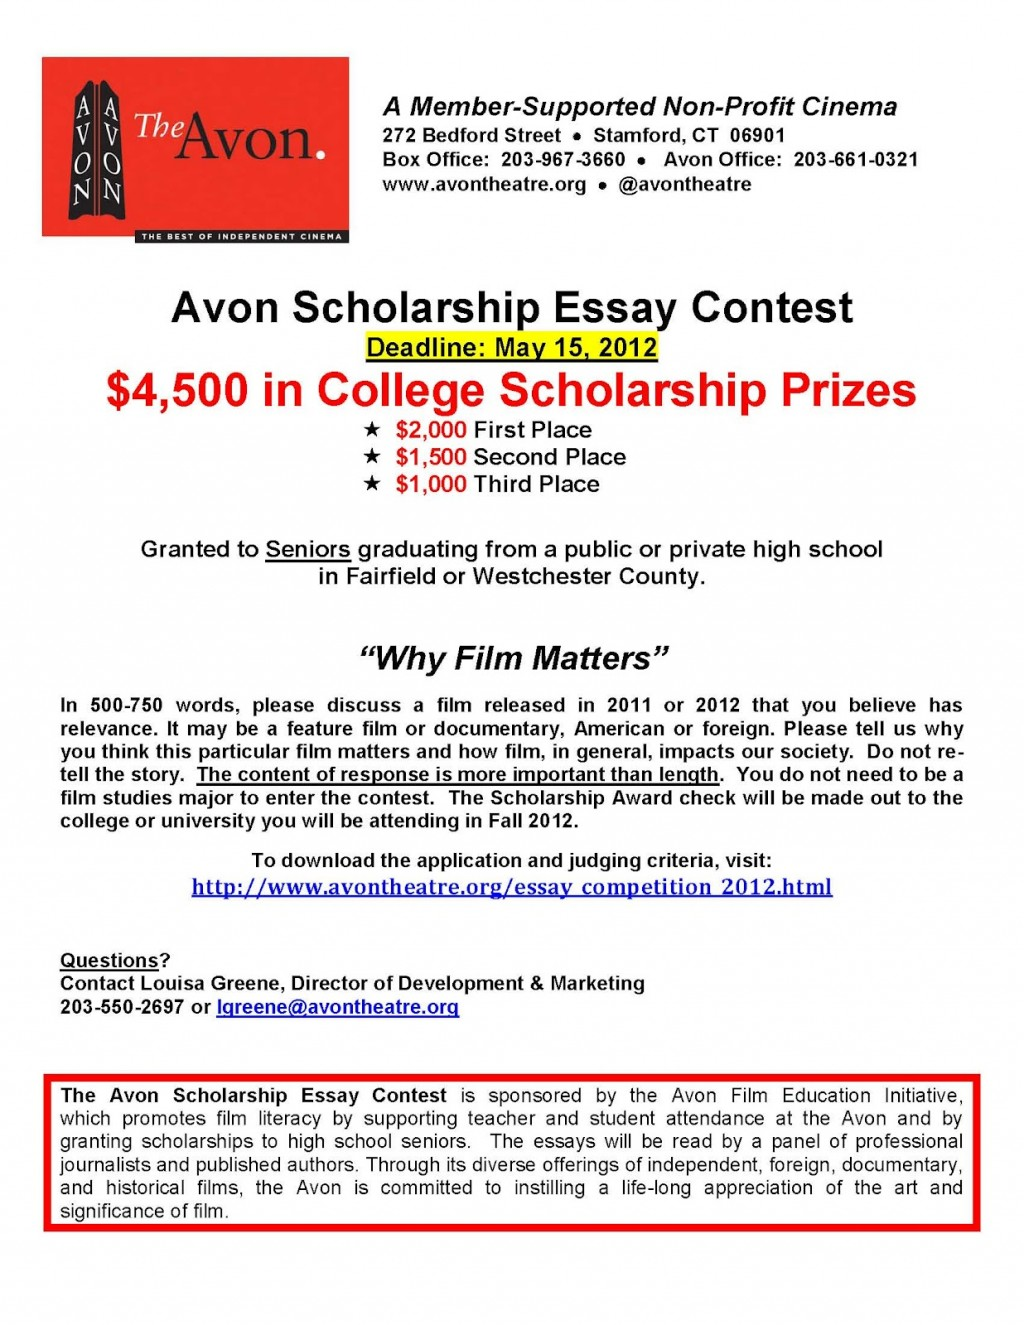 016 Avonscholarshipessaycontest2012flyer Essay Example Shocking Scholarships For High School Students 2018 2019 Large